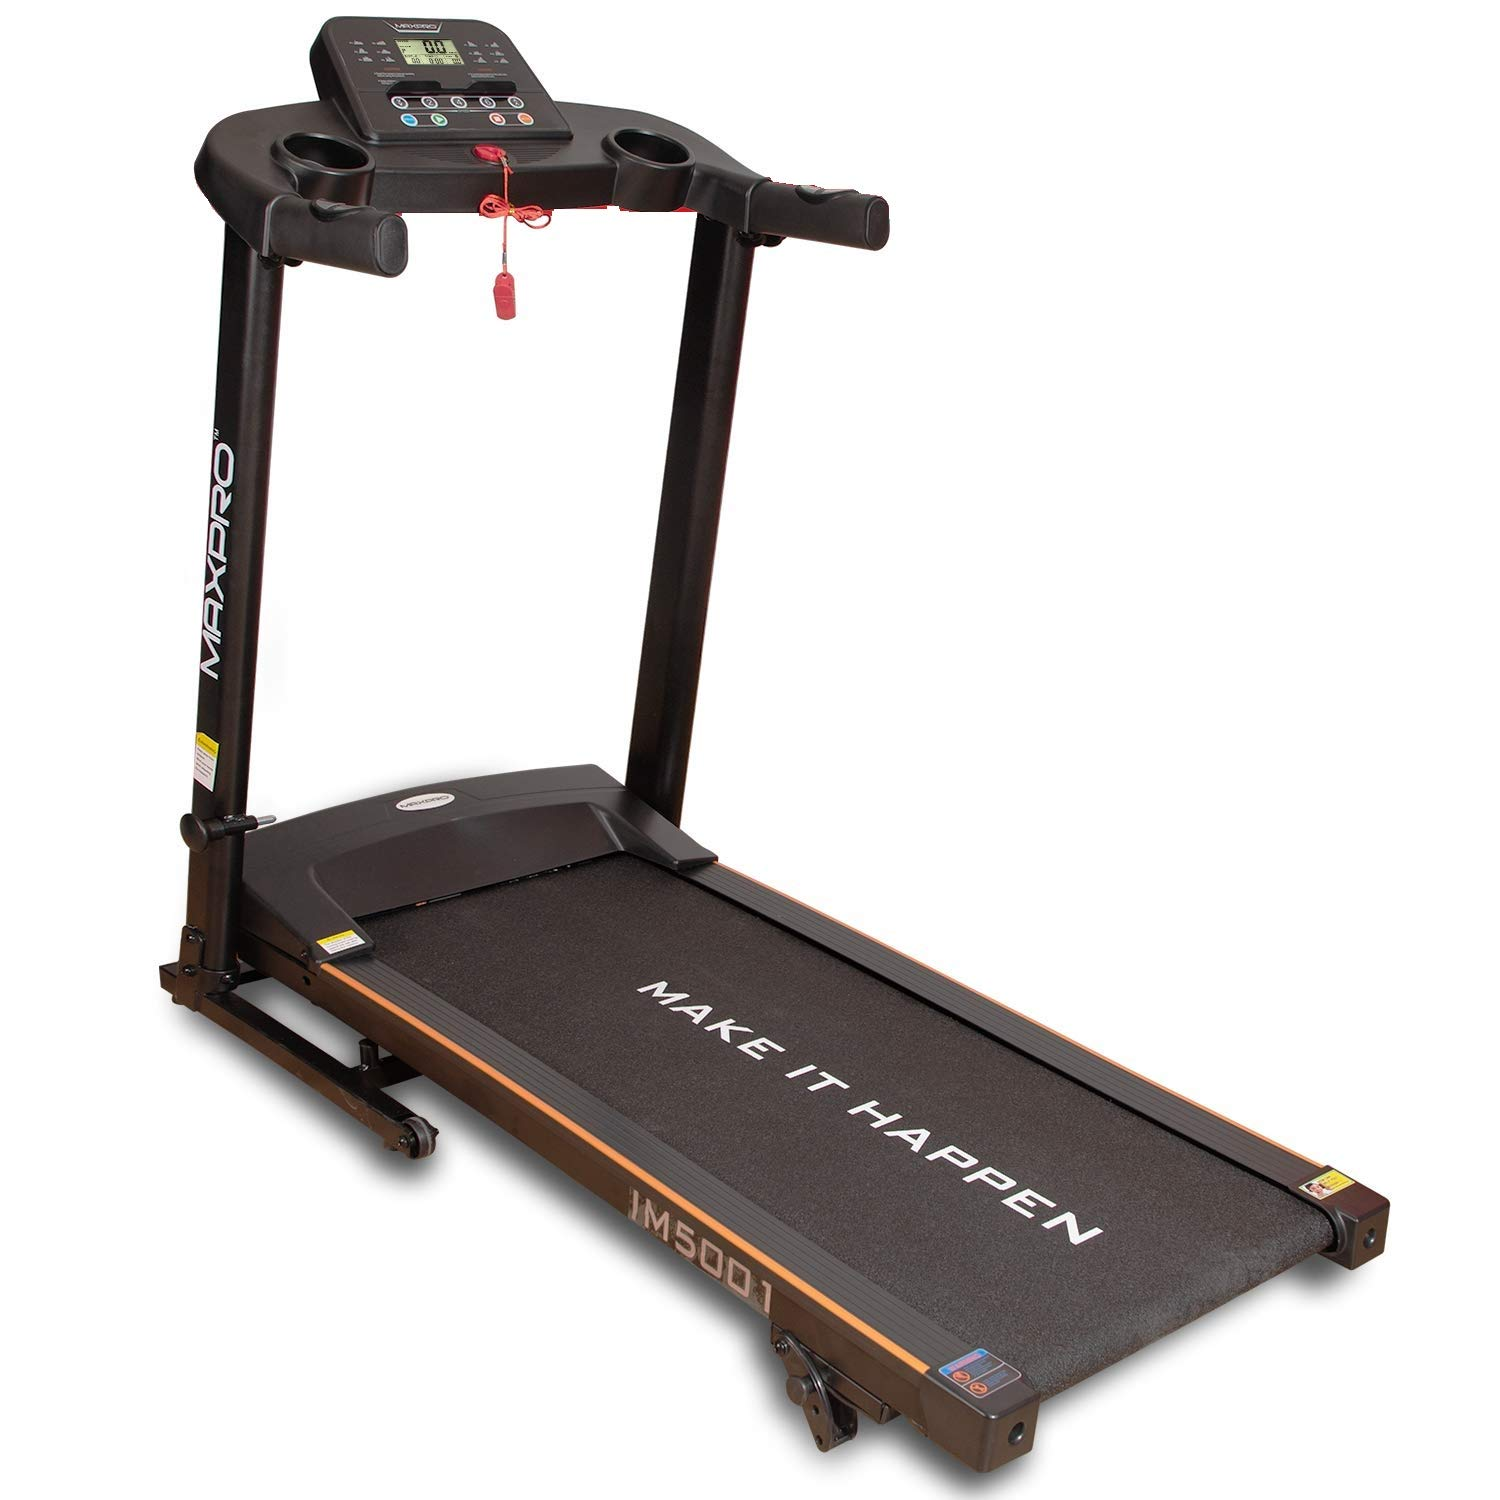 WELCARE Folding Treadmill IM5001 (1.5HP) review